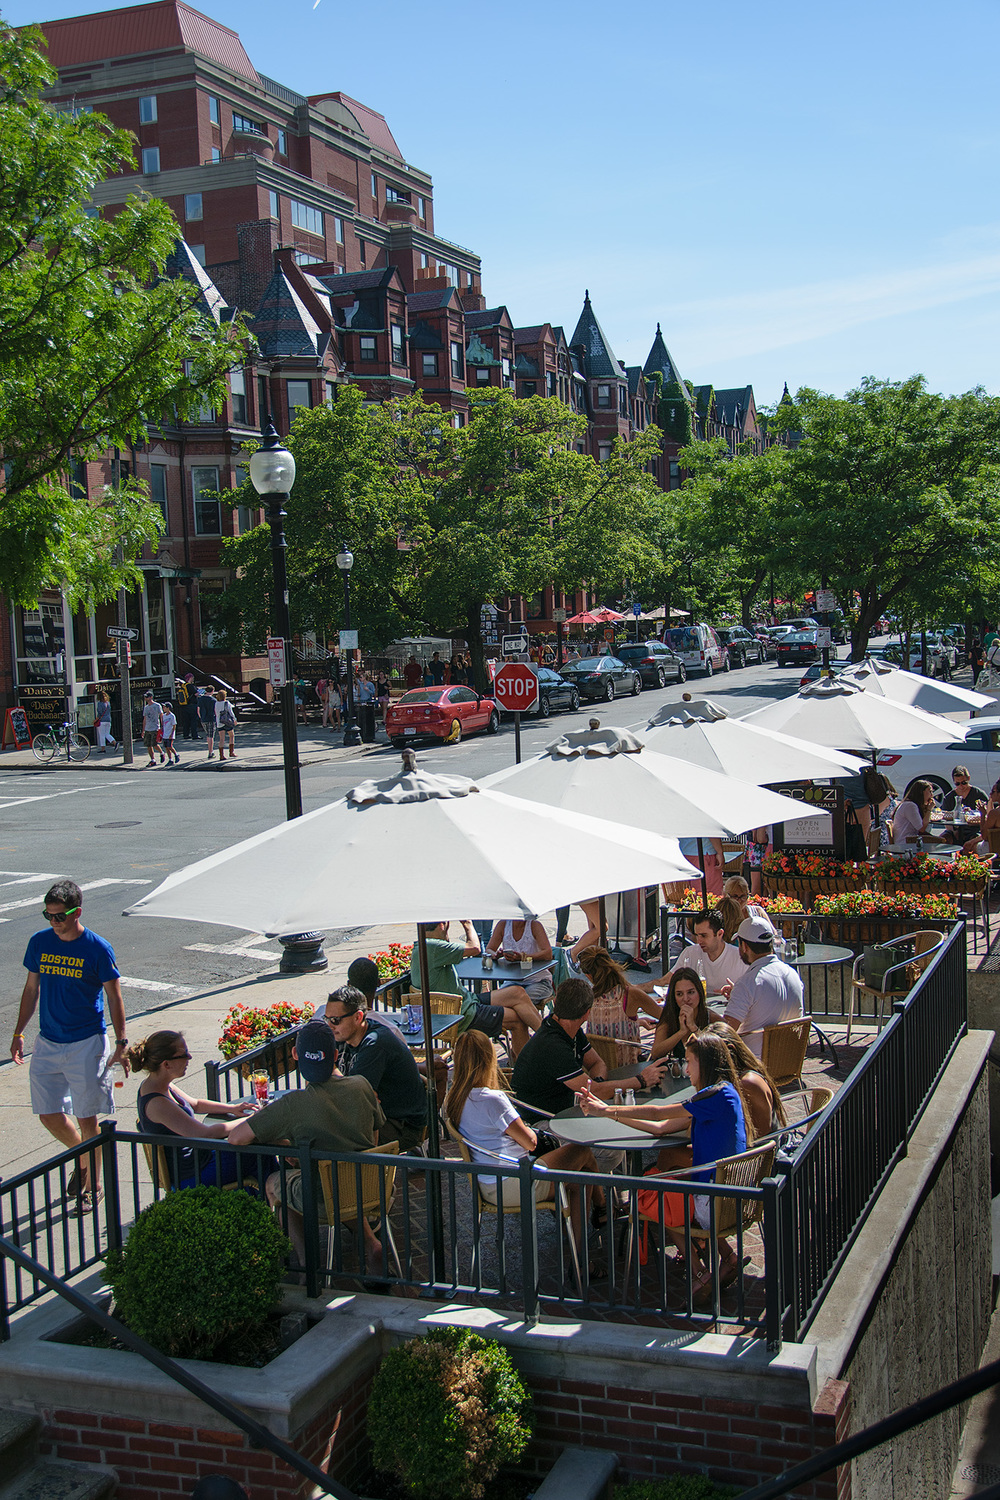 After a visit to the Boston Marathon Finish Line, historic Newbury Street shops and cafes are just around the corner!